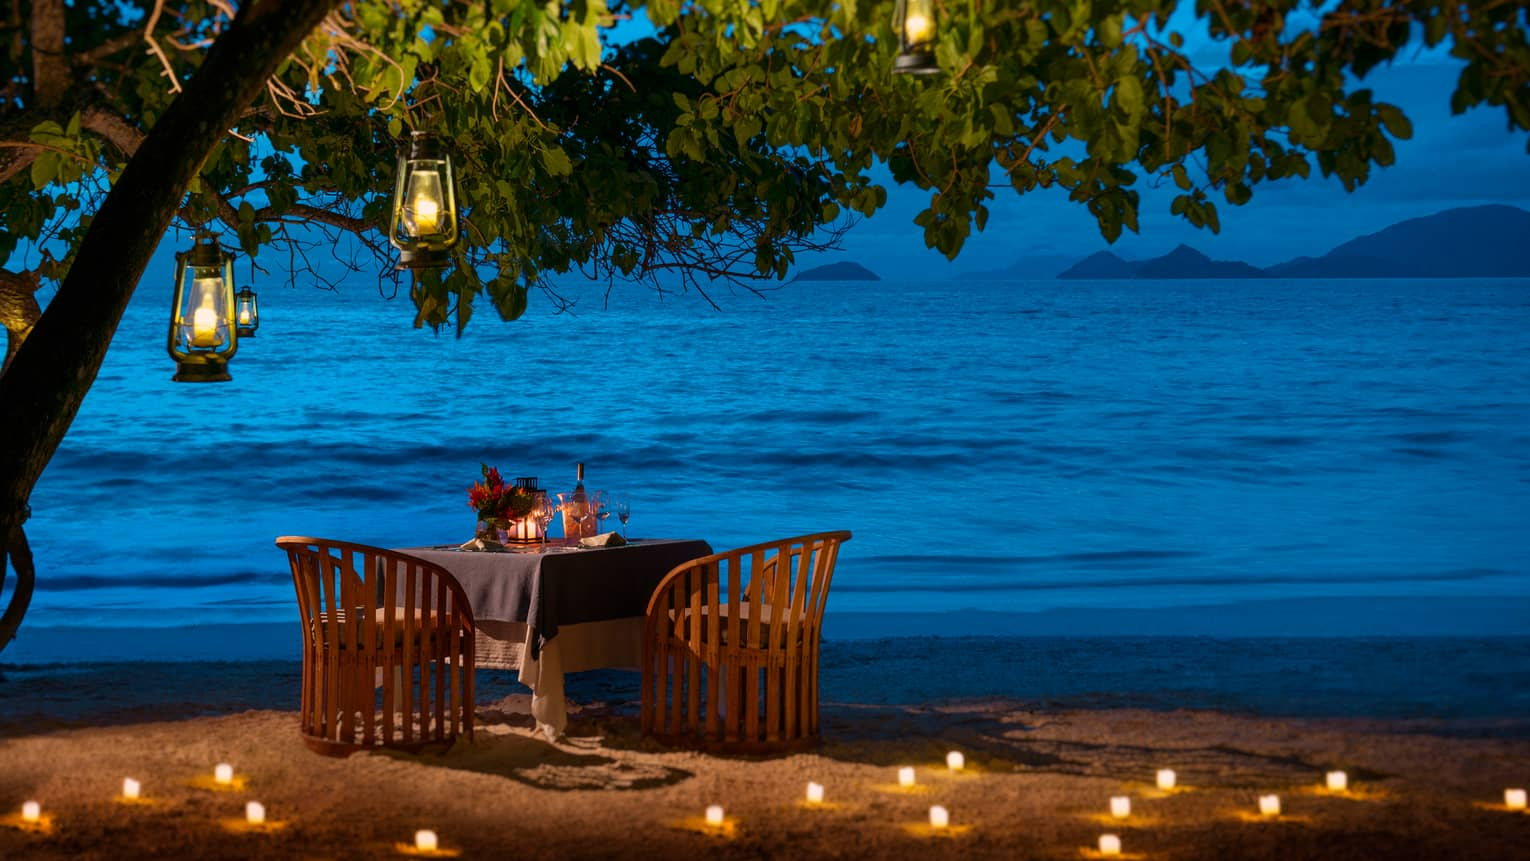 Round candle-lit dining table under tree, lanterns on beach at night